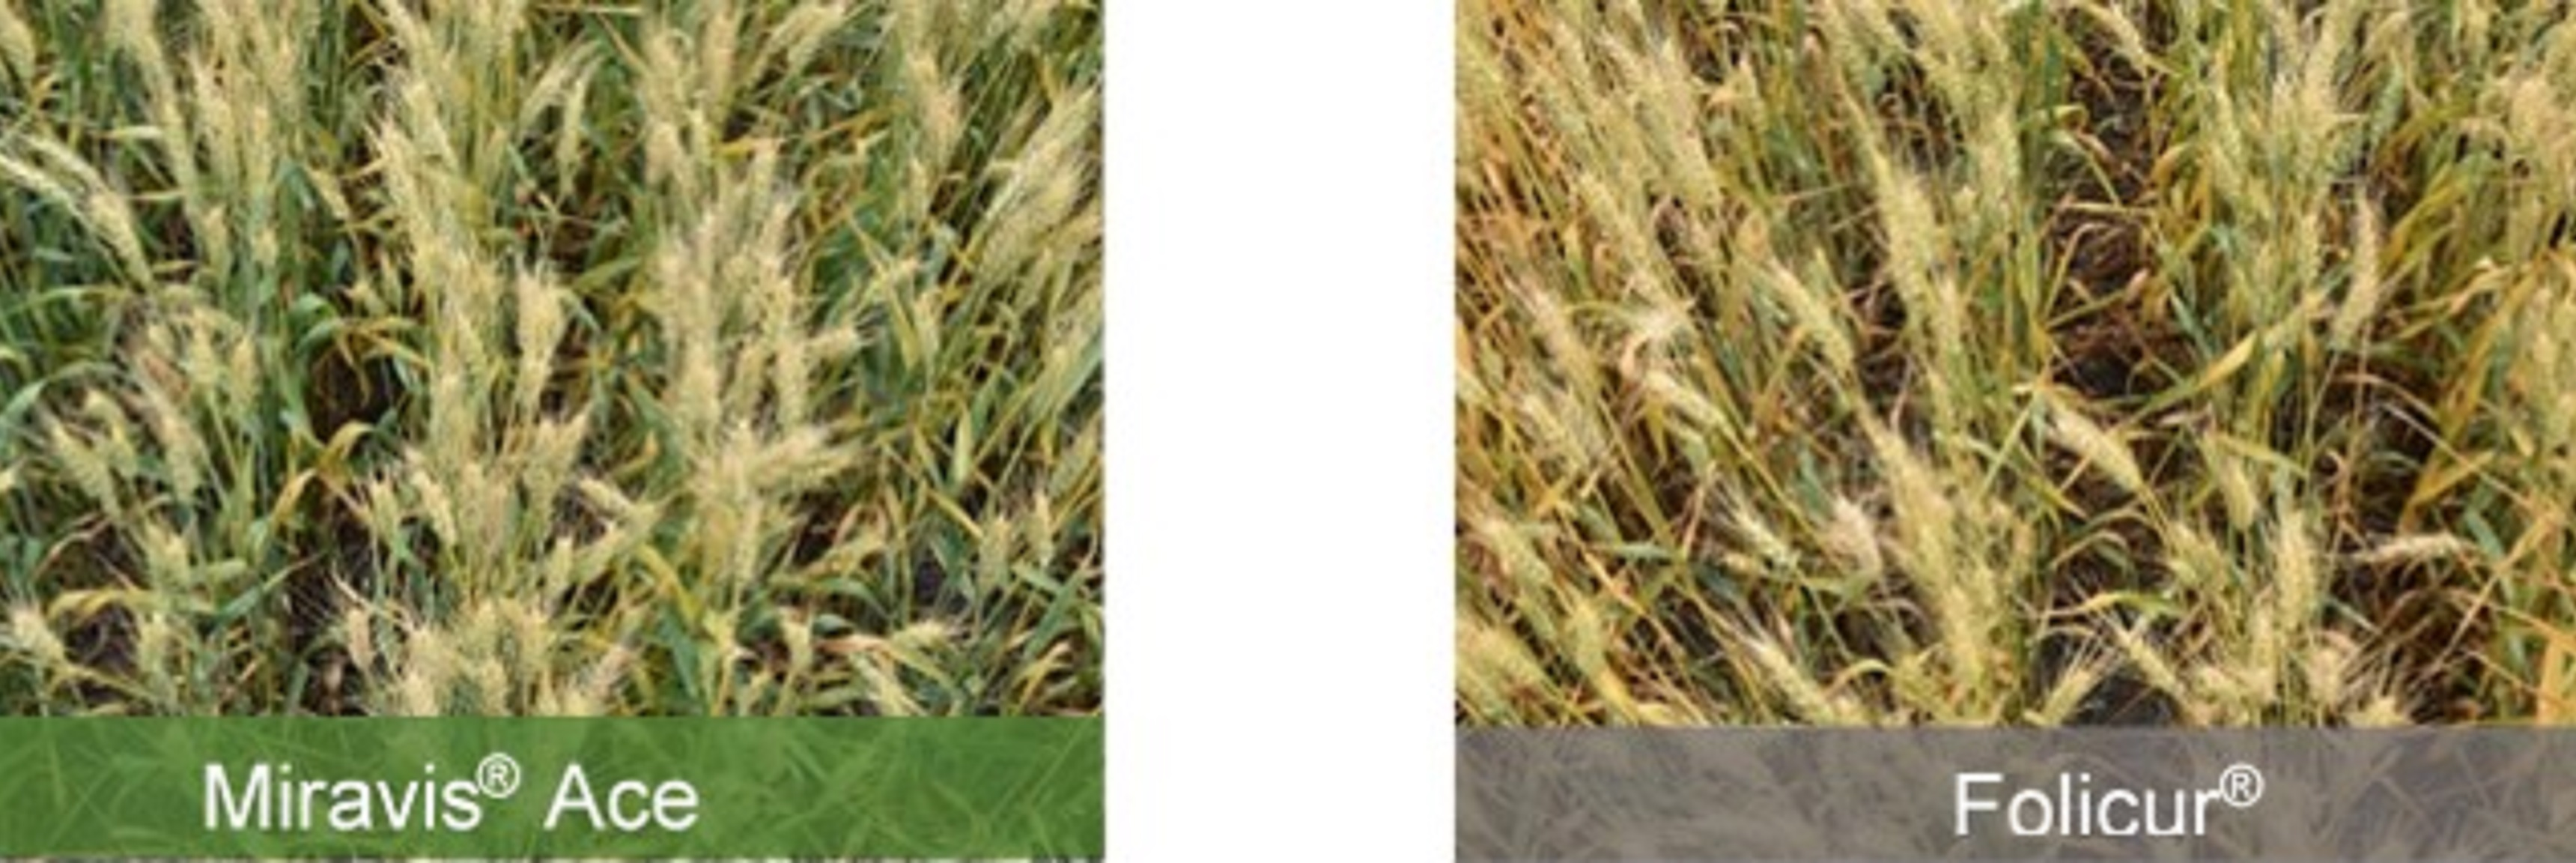 This agronomic image compares Miravis Ace fungicide to Folicur.